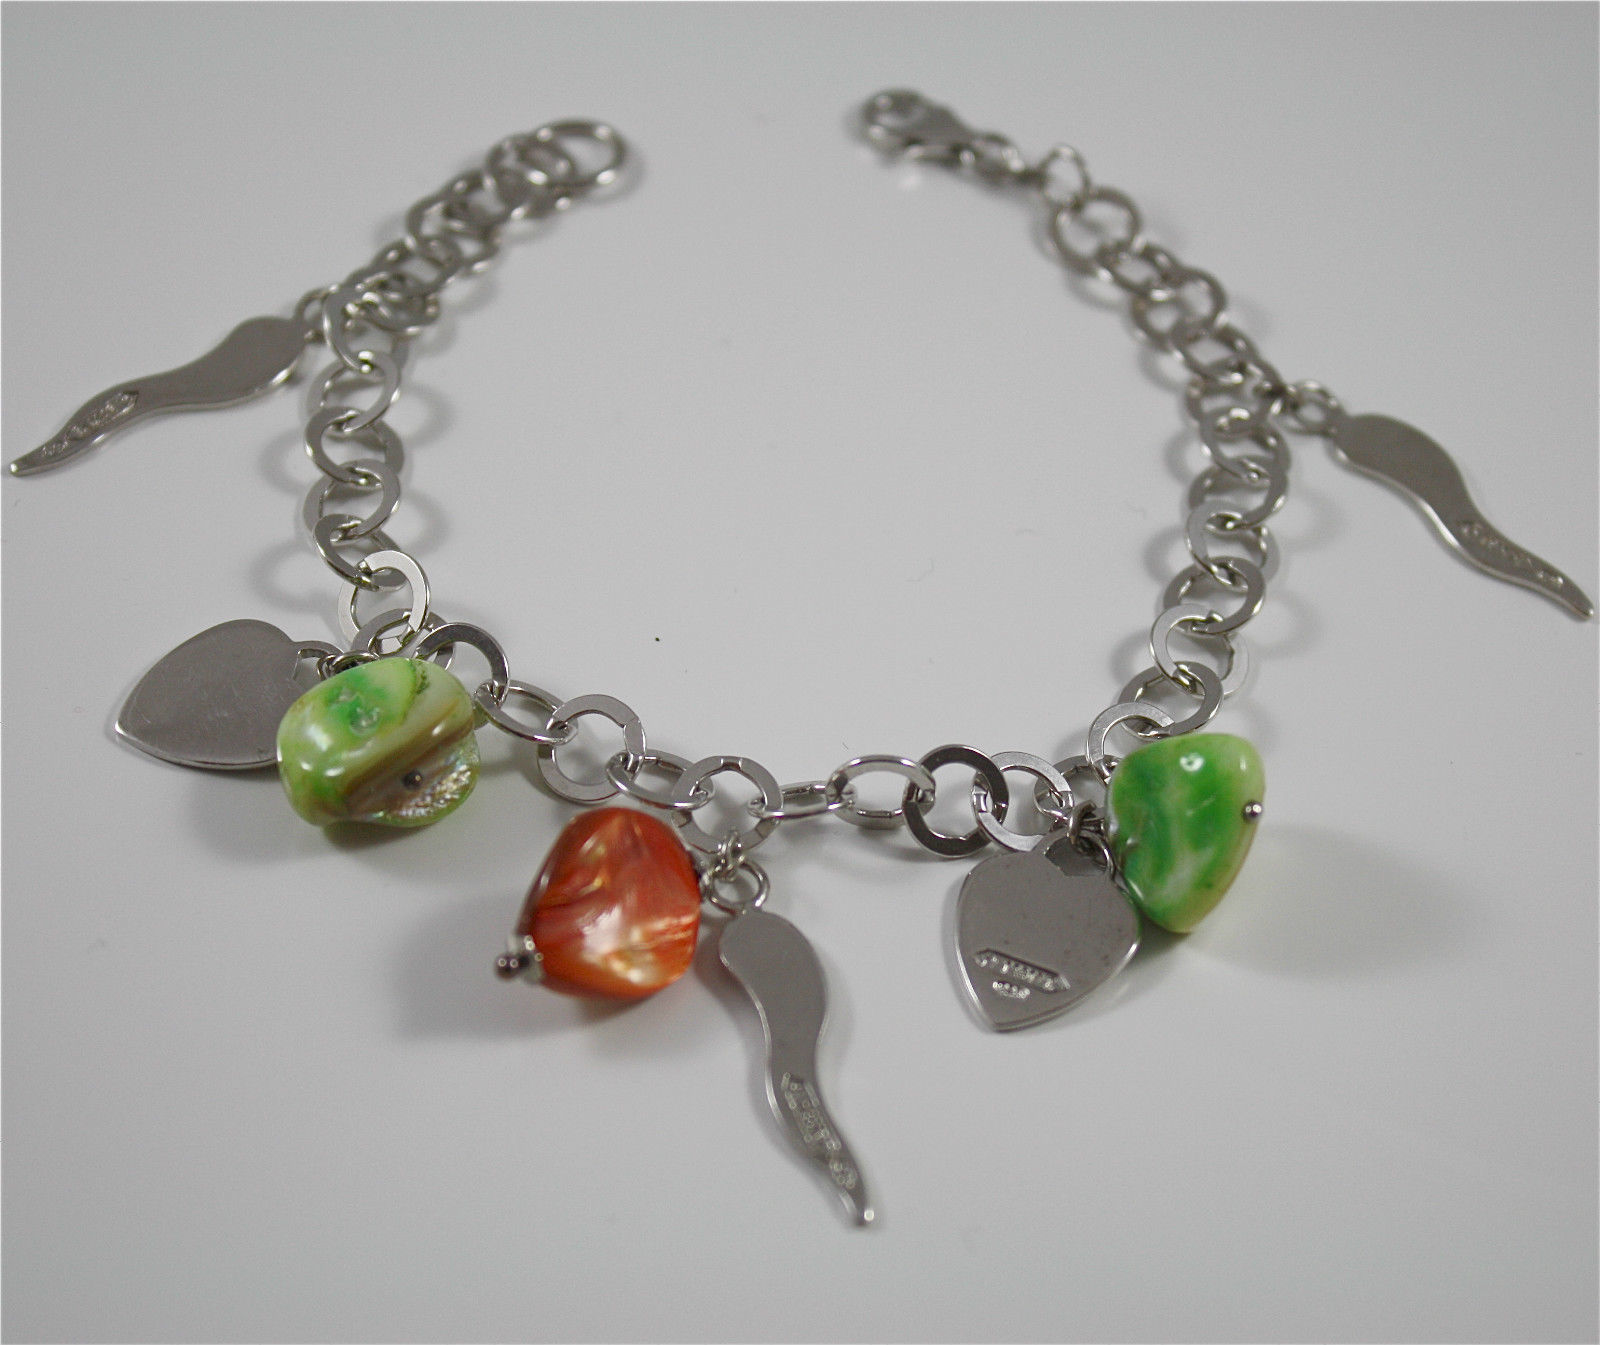 Bracelet in Sterling Silver 925 Rhodium with Hearts, Horns, Pearl Green, charms